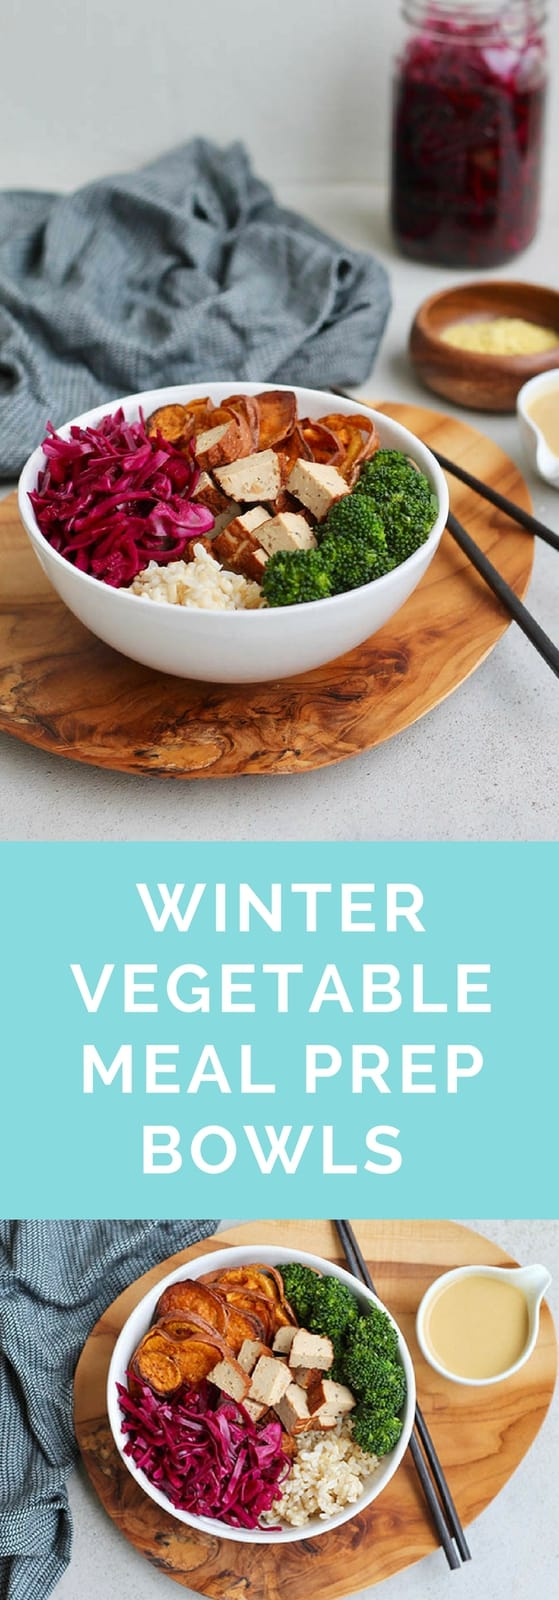 Winter Vegetable Meal Prep Bowls with quick-pickled red cabbage, roasted sweet potato, broccoli, smoked tofu, and magic tahini sauce to make all your dreams come true! #vegan #vegetarian #mealprep #bowl #glutenfree